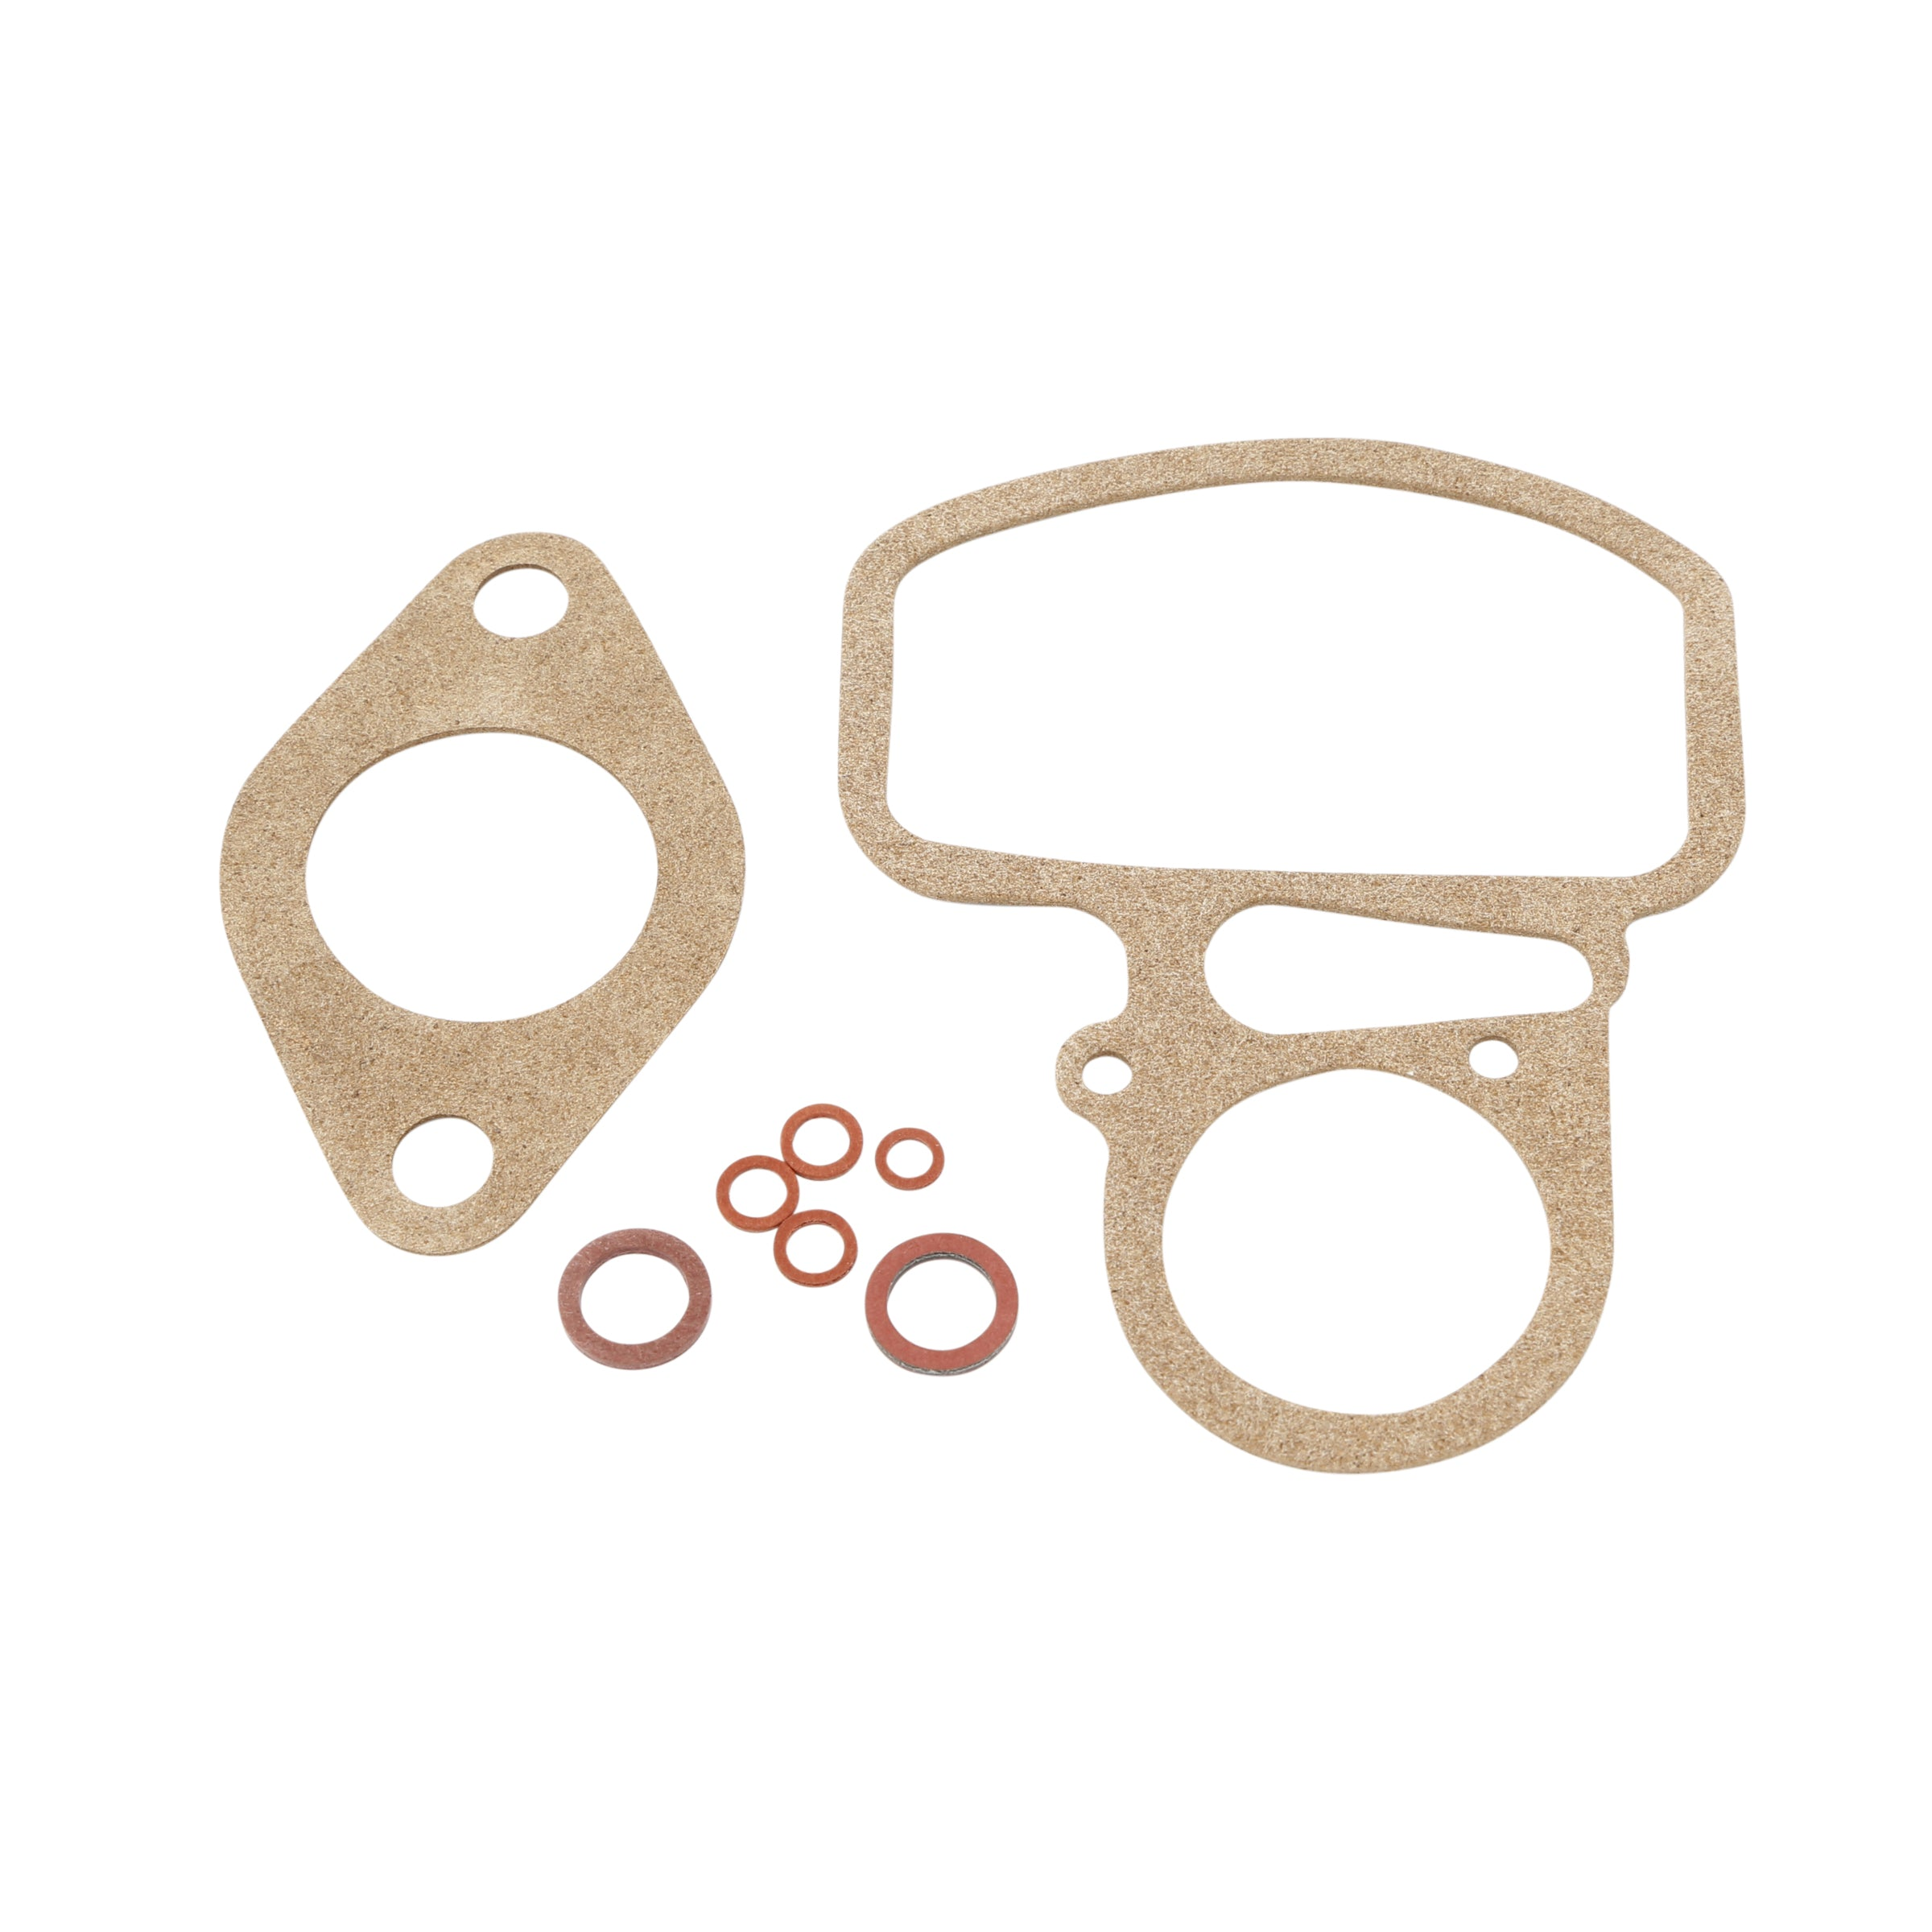 Carburetor Gasket Set • 1932-34 Zenith Model B